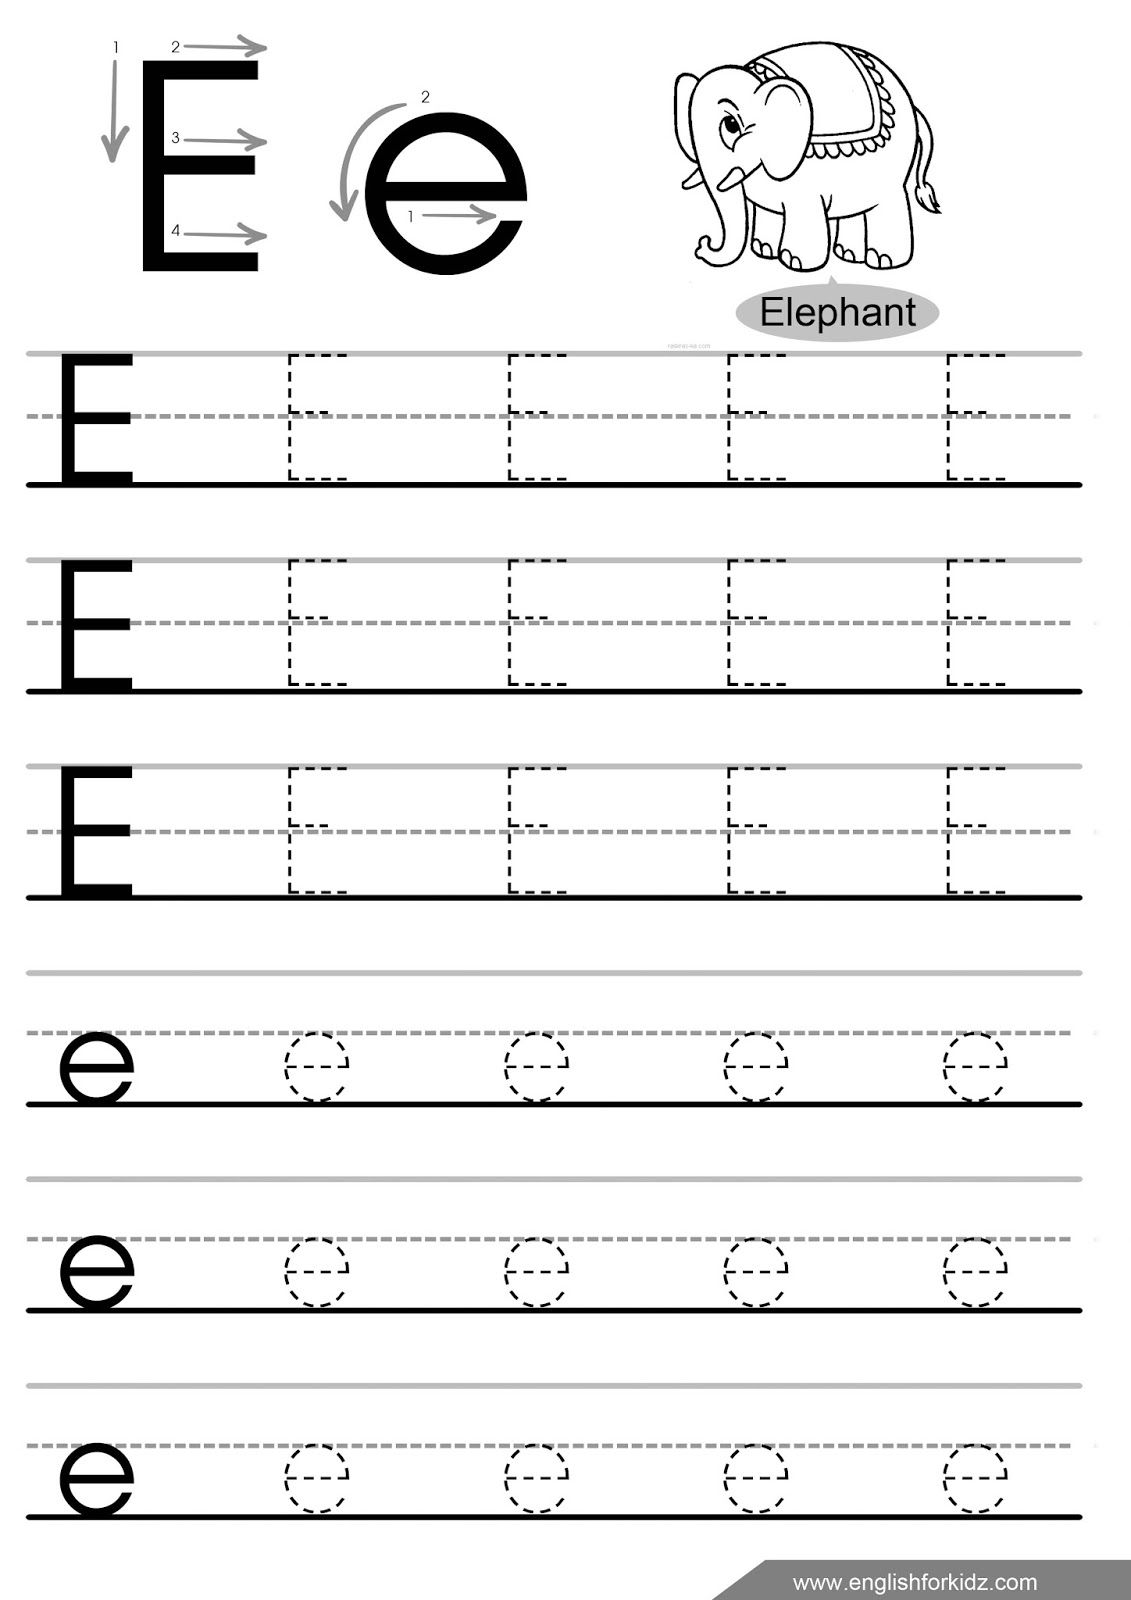 image result for spanish vowel ee worksheet alphabet letter tracing worksheets tracing. Black Bedroom Furniture Sets. Home Design Ideas